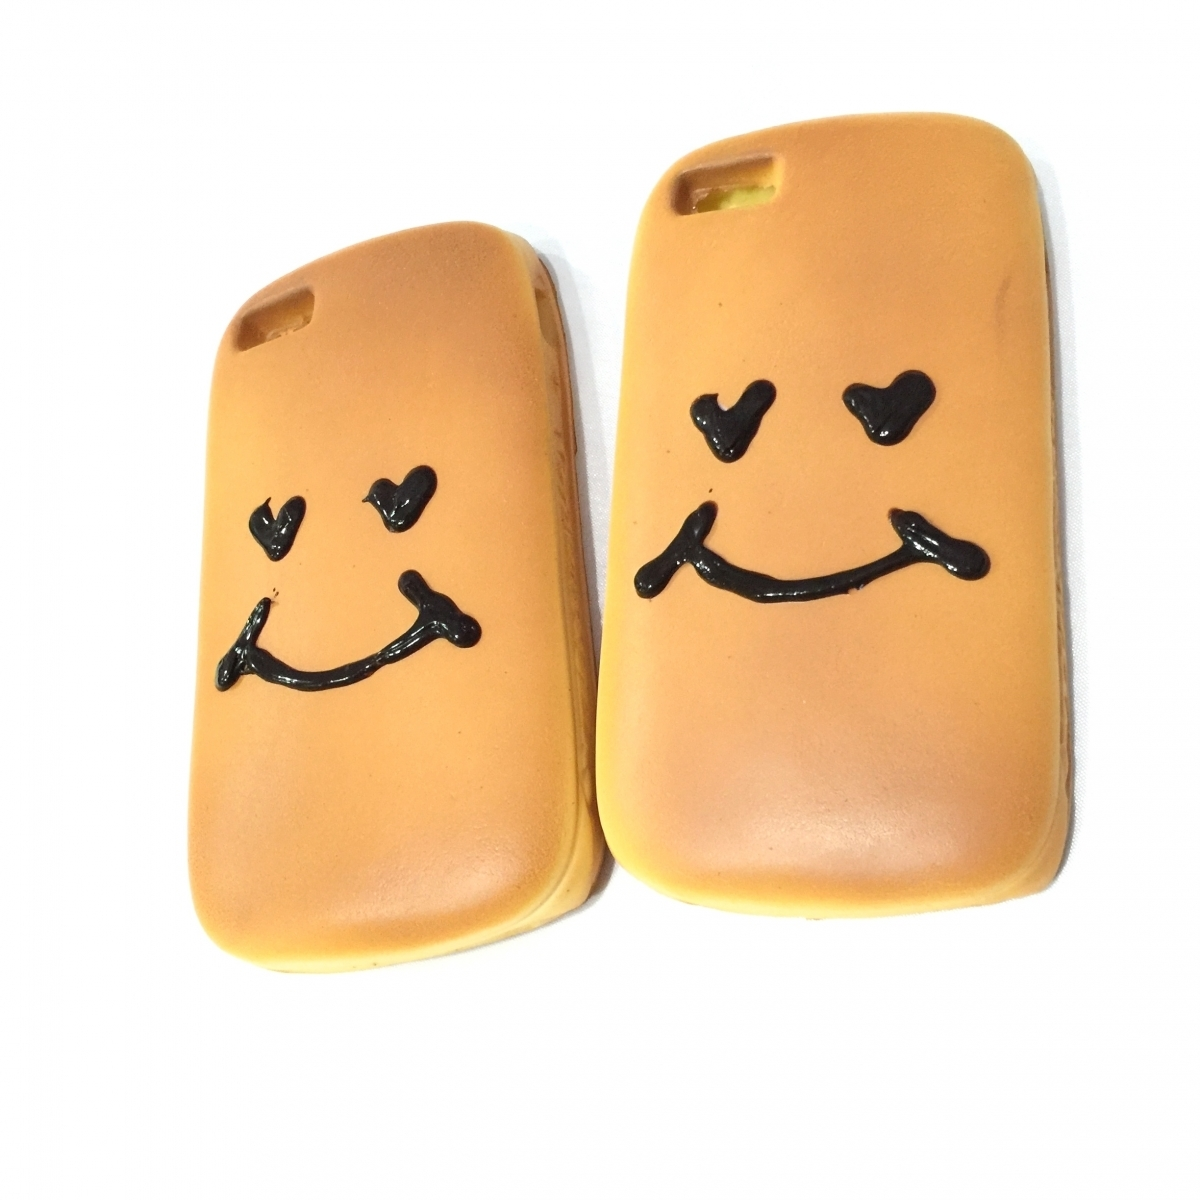 Cover iphone 5 squishy - Sale Sold Out 102662